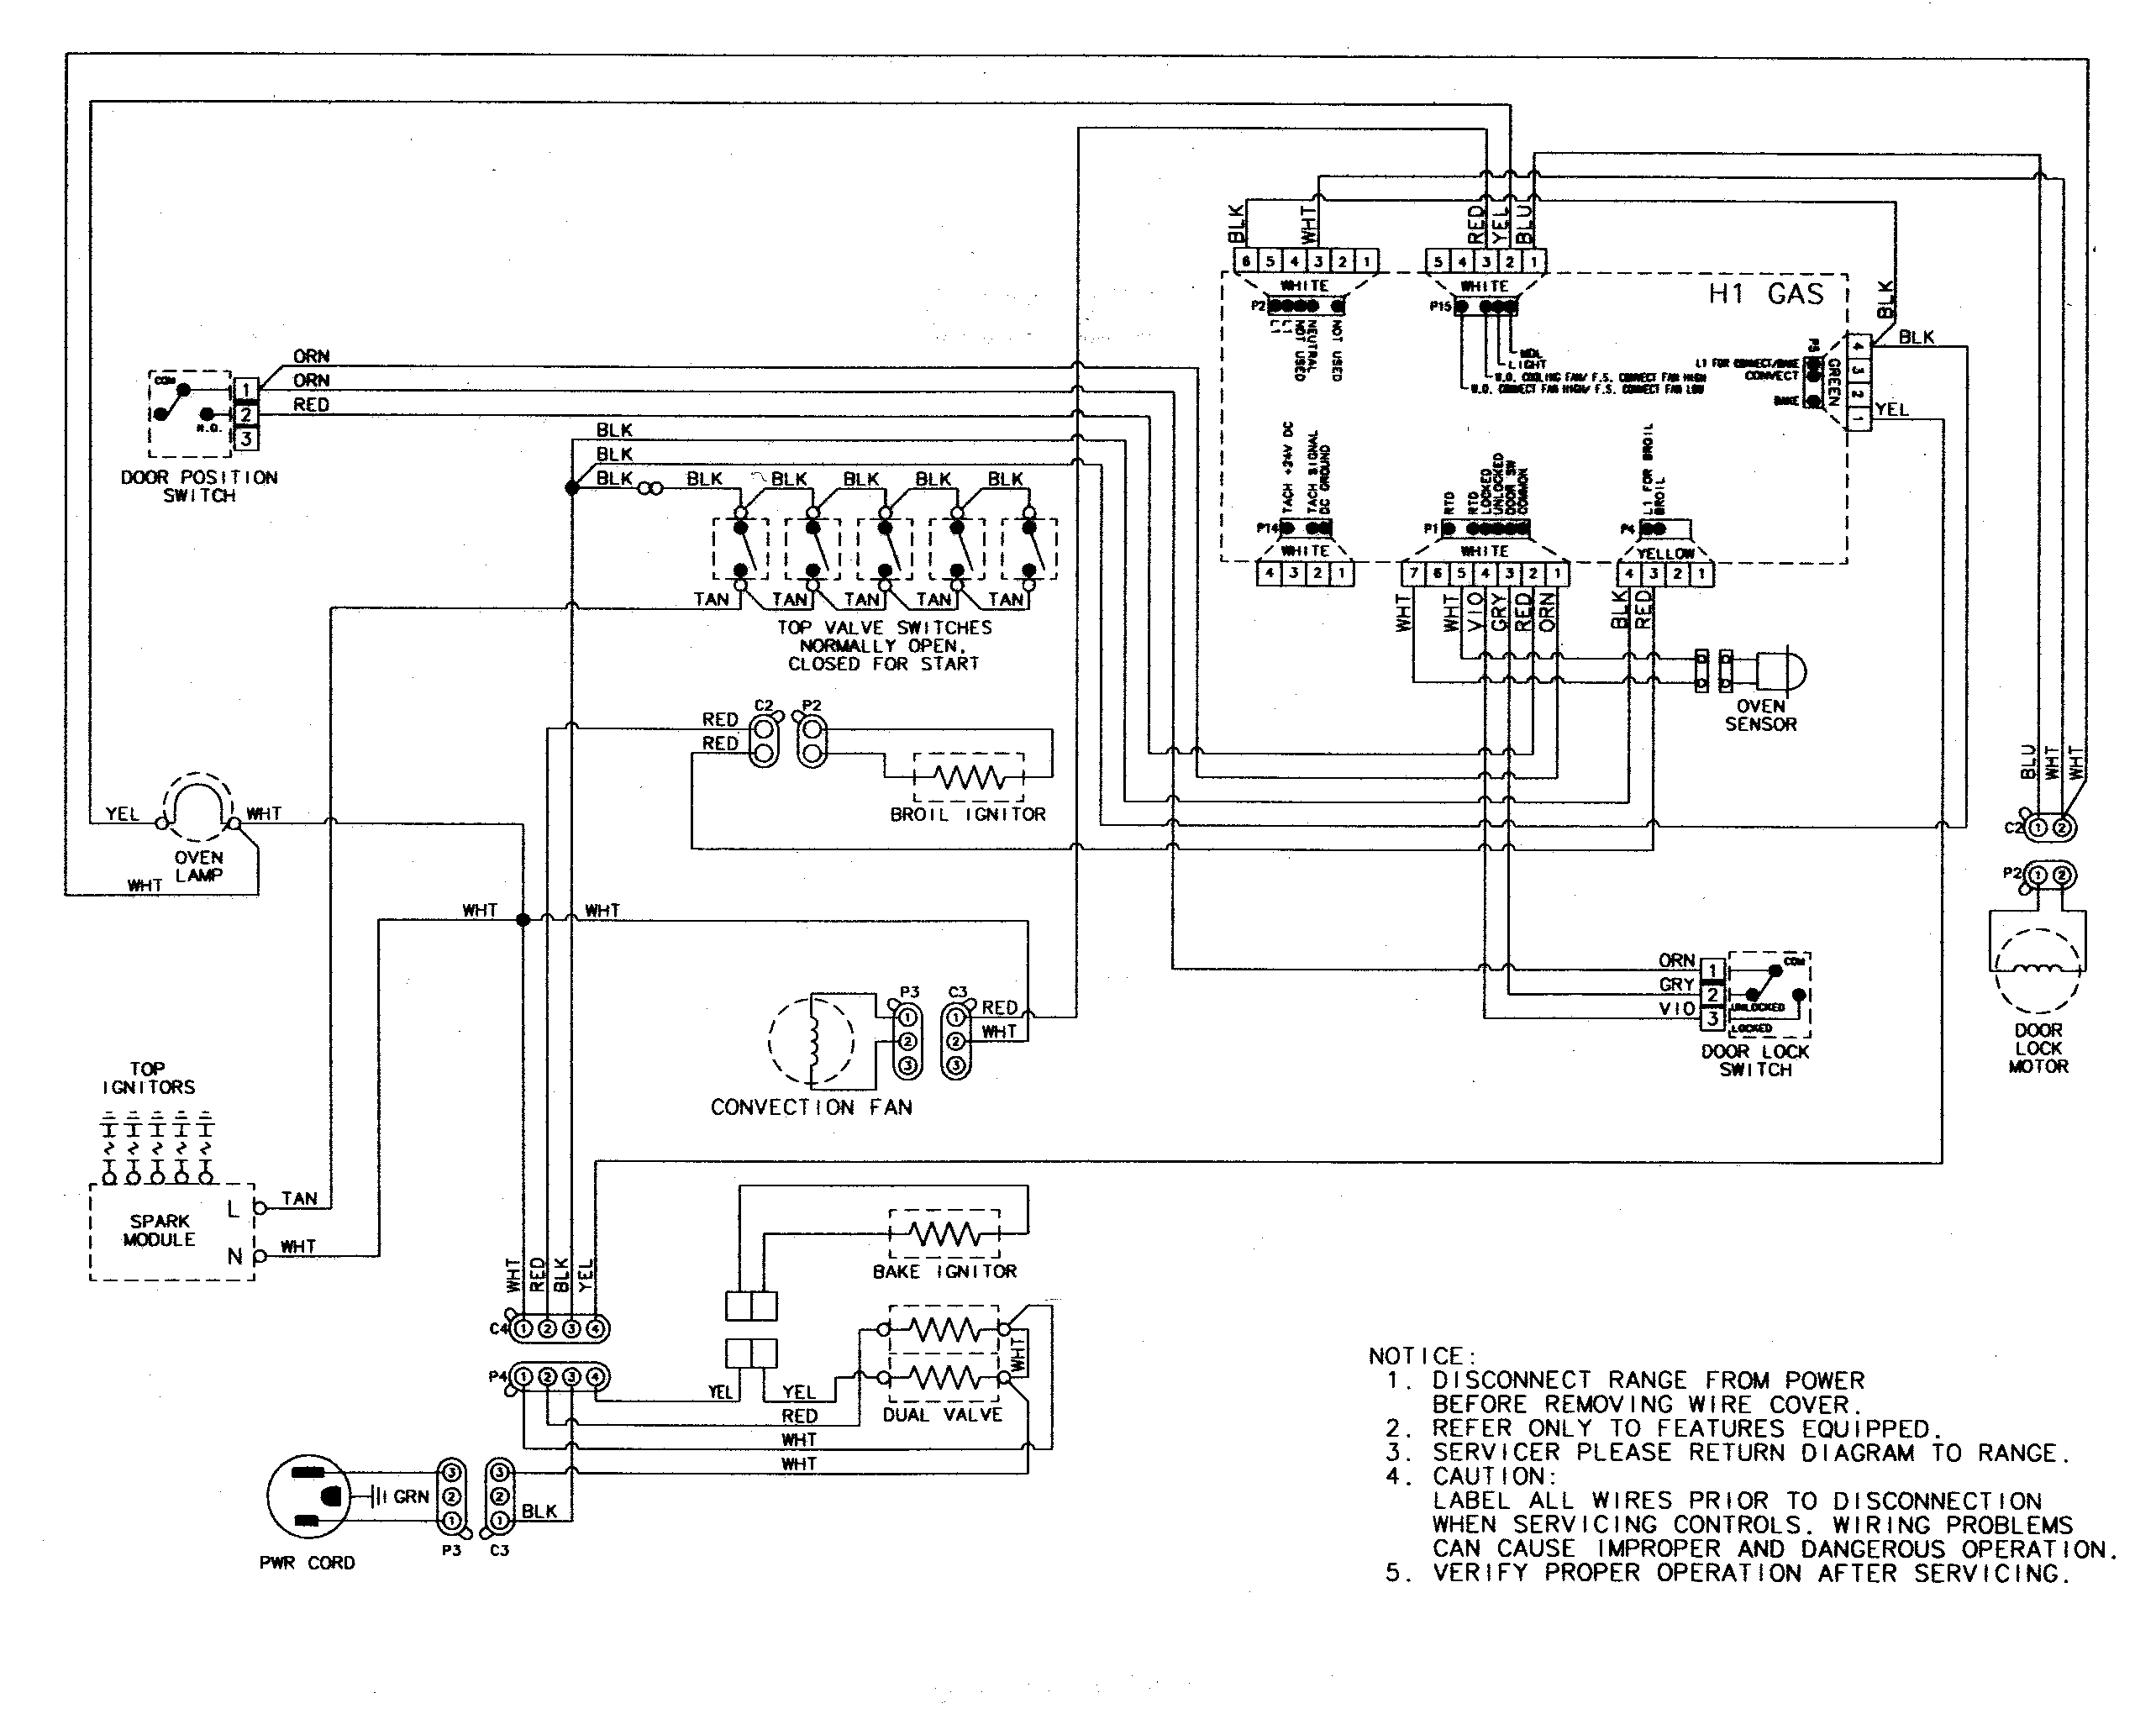 New Modra Generator Wiring Diagram Diagram Diagramsample Diagramtemplate Check More At Https Morningculture Co Modra Gen Whirlpool Dryer Diagram Heat Pump